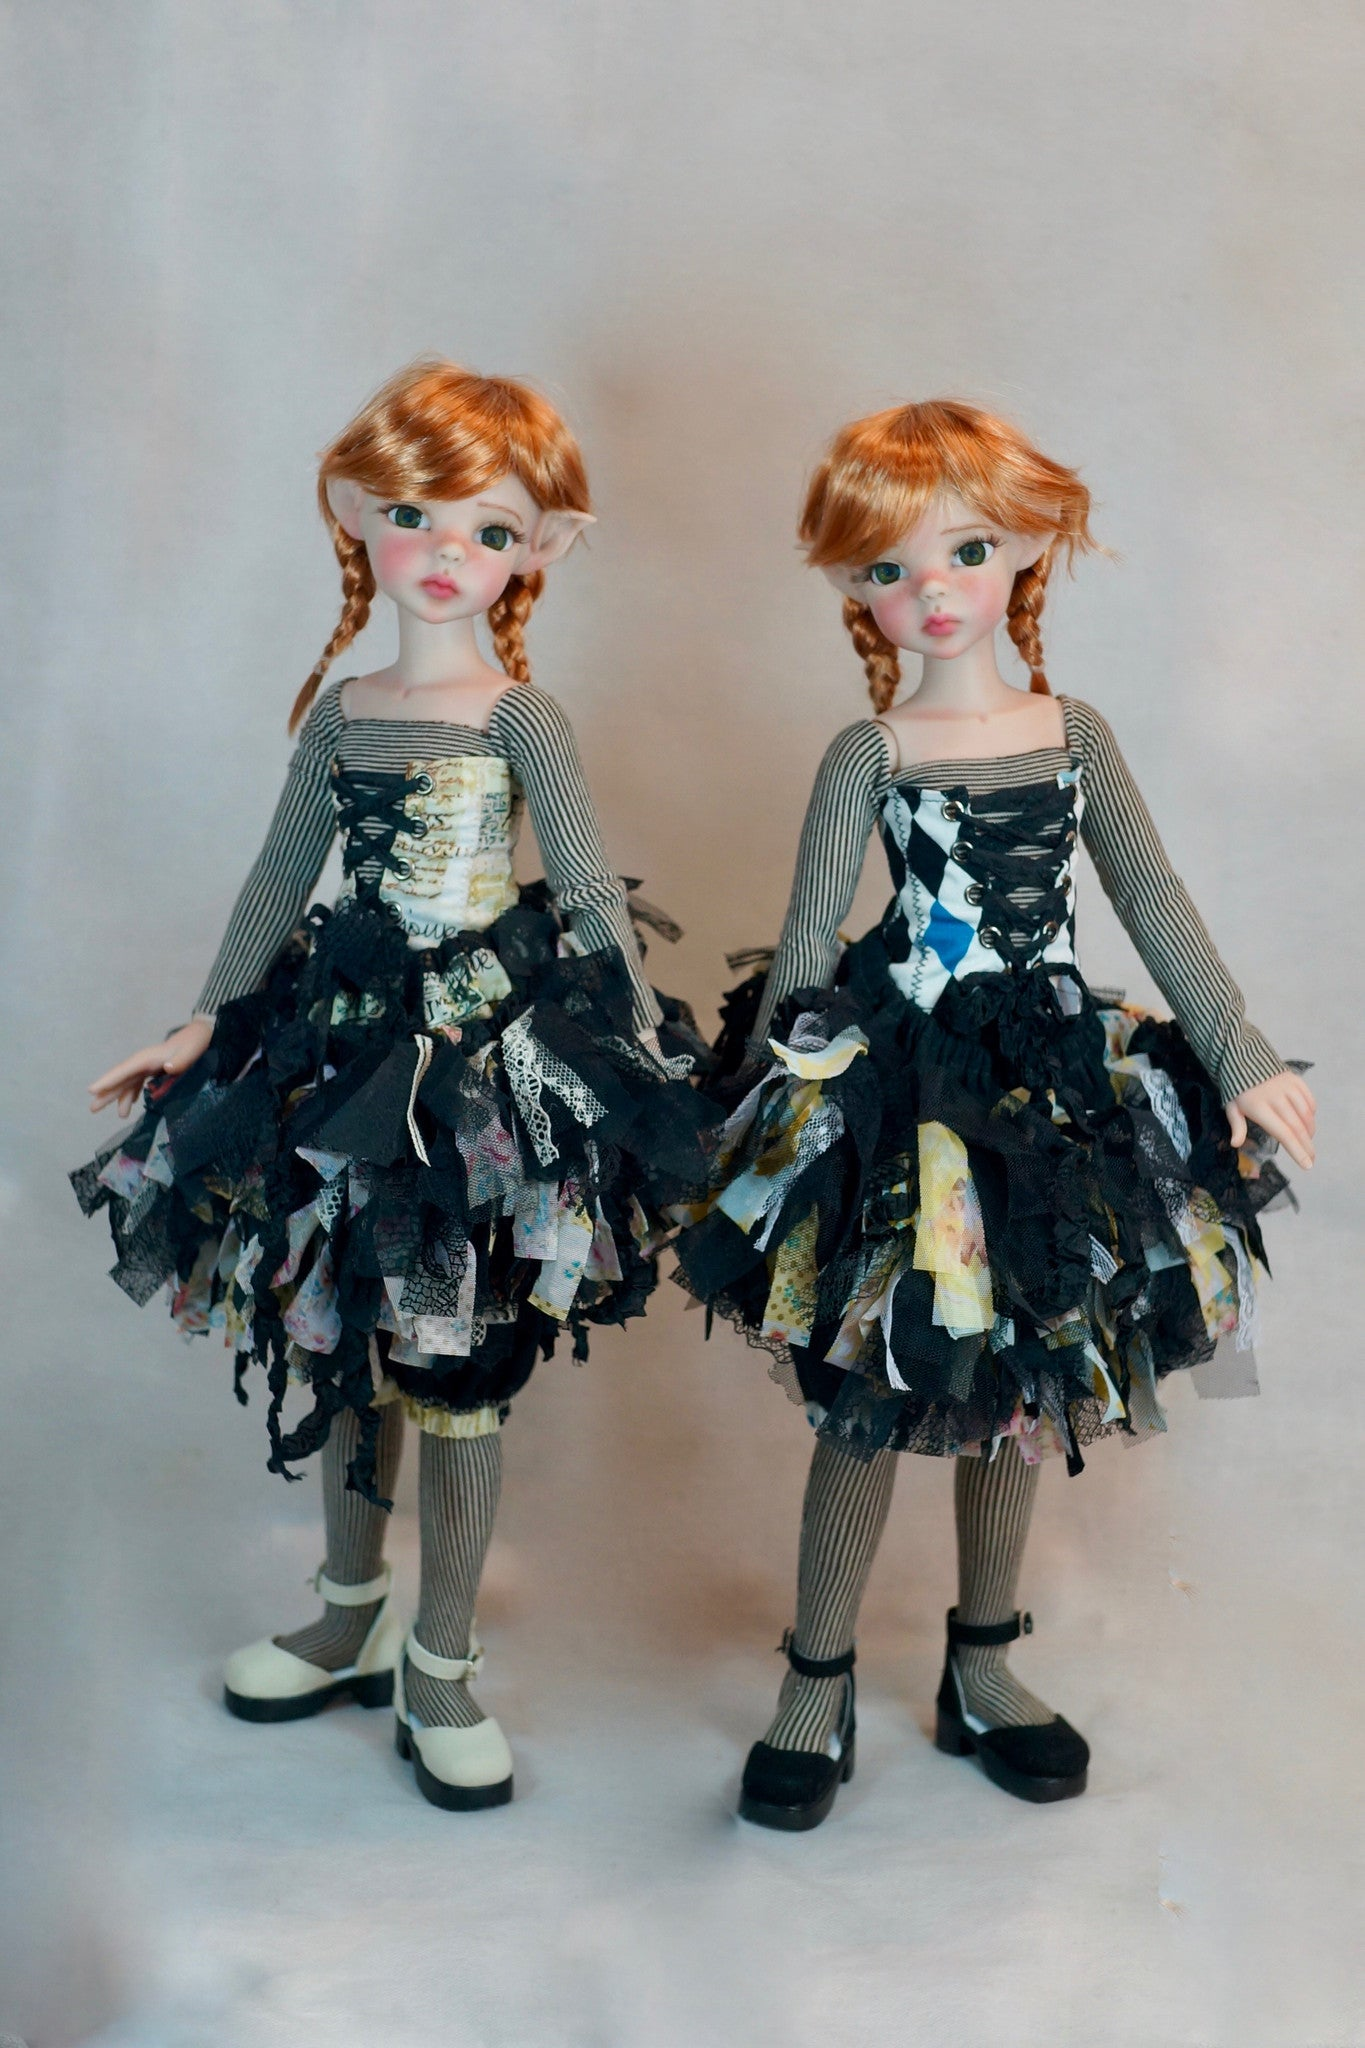 Twin Ballerina's by Bo Bergemann - Sold